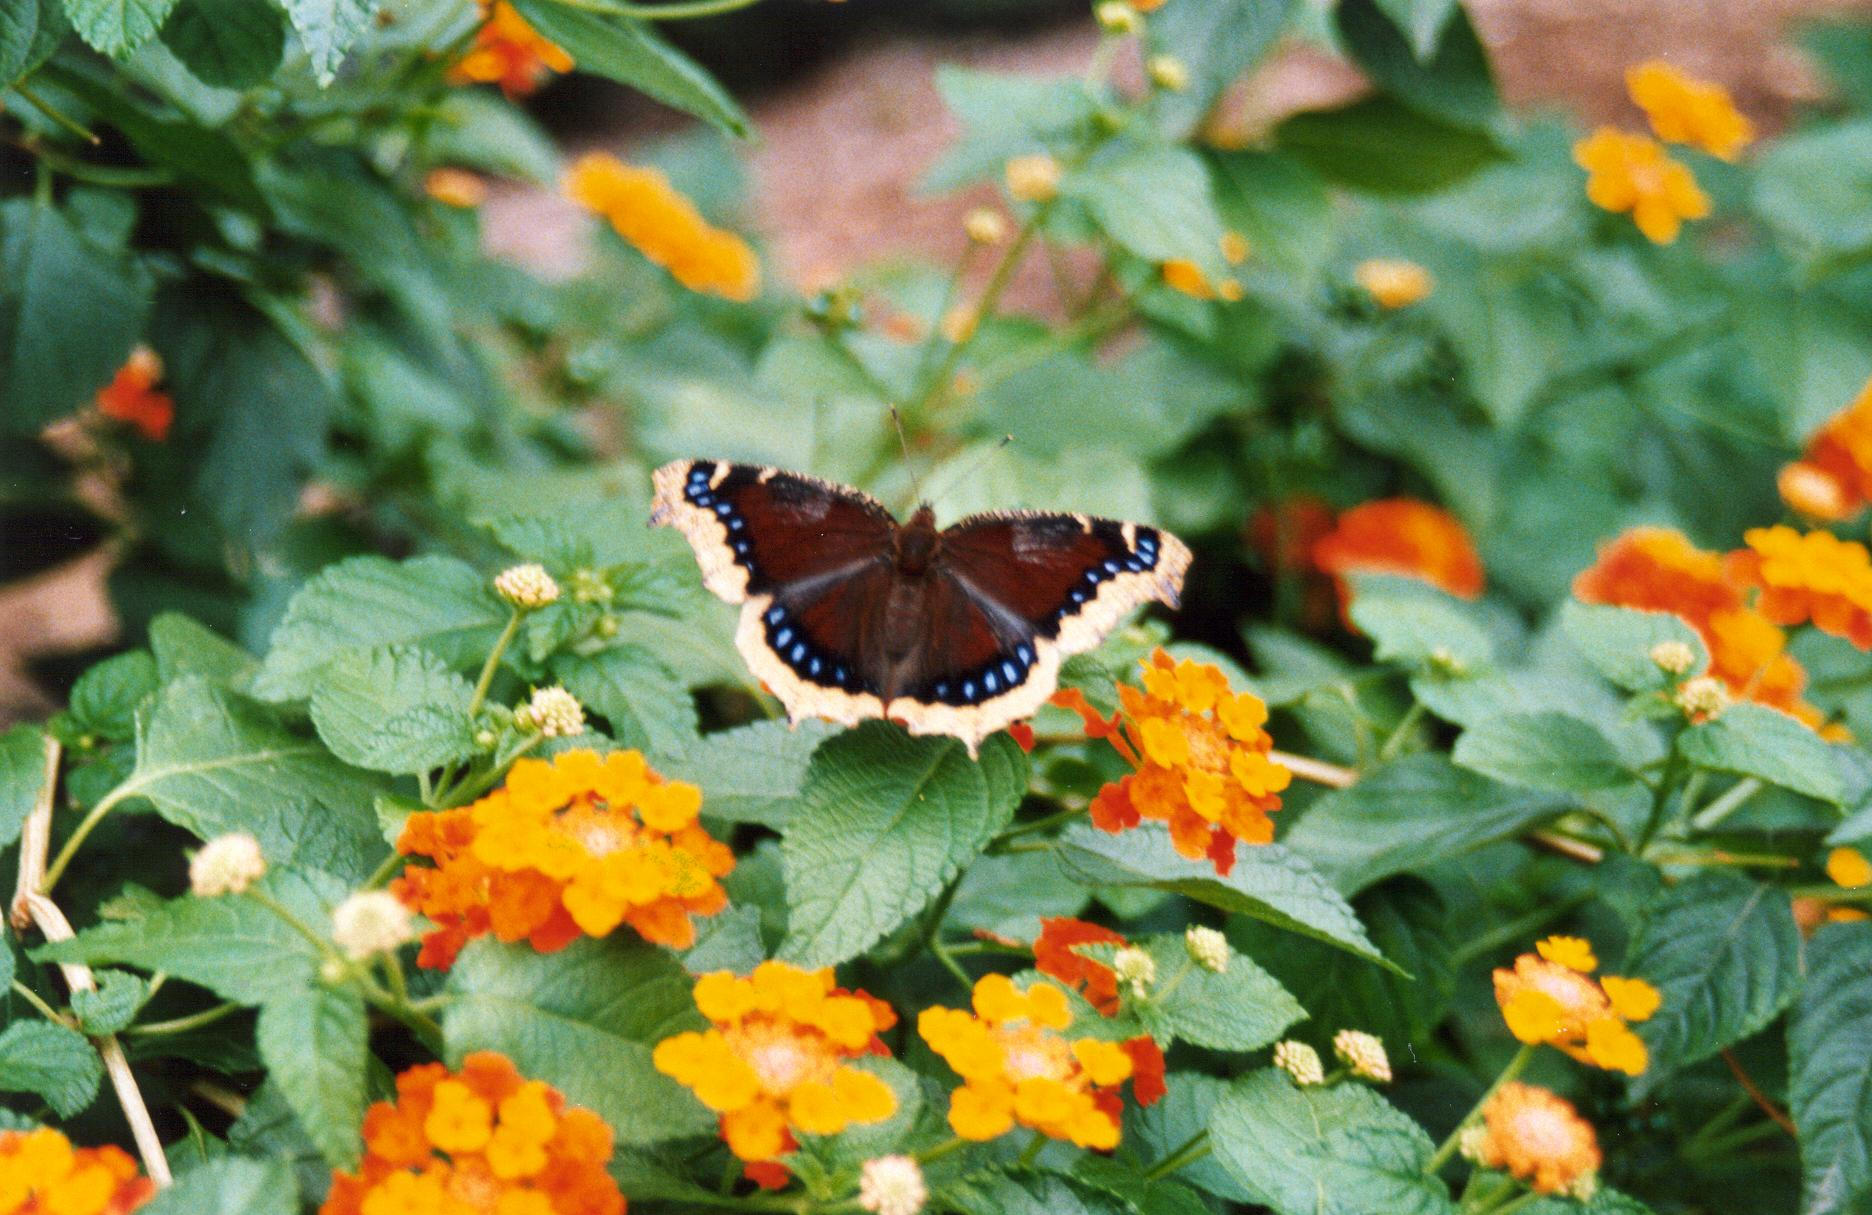 butterfly at insectarium author laverdiere marc a andre